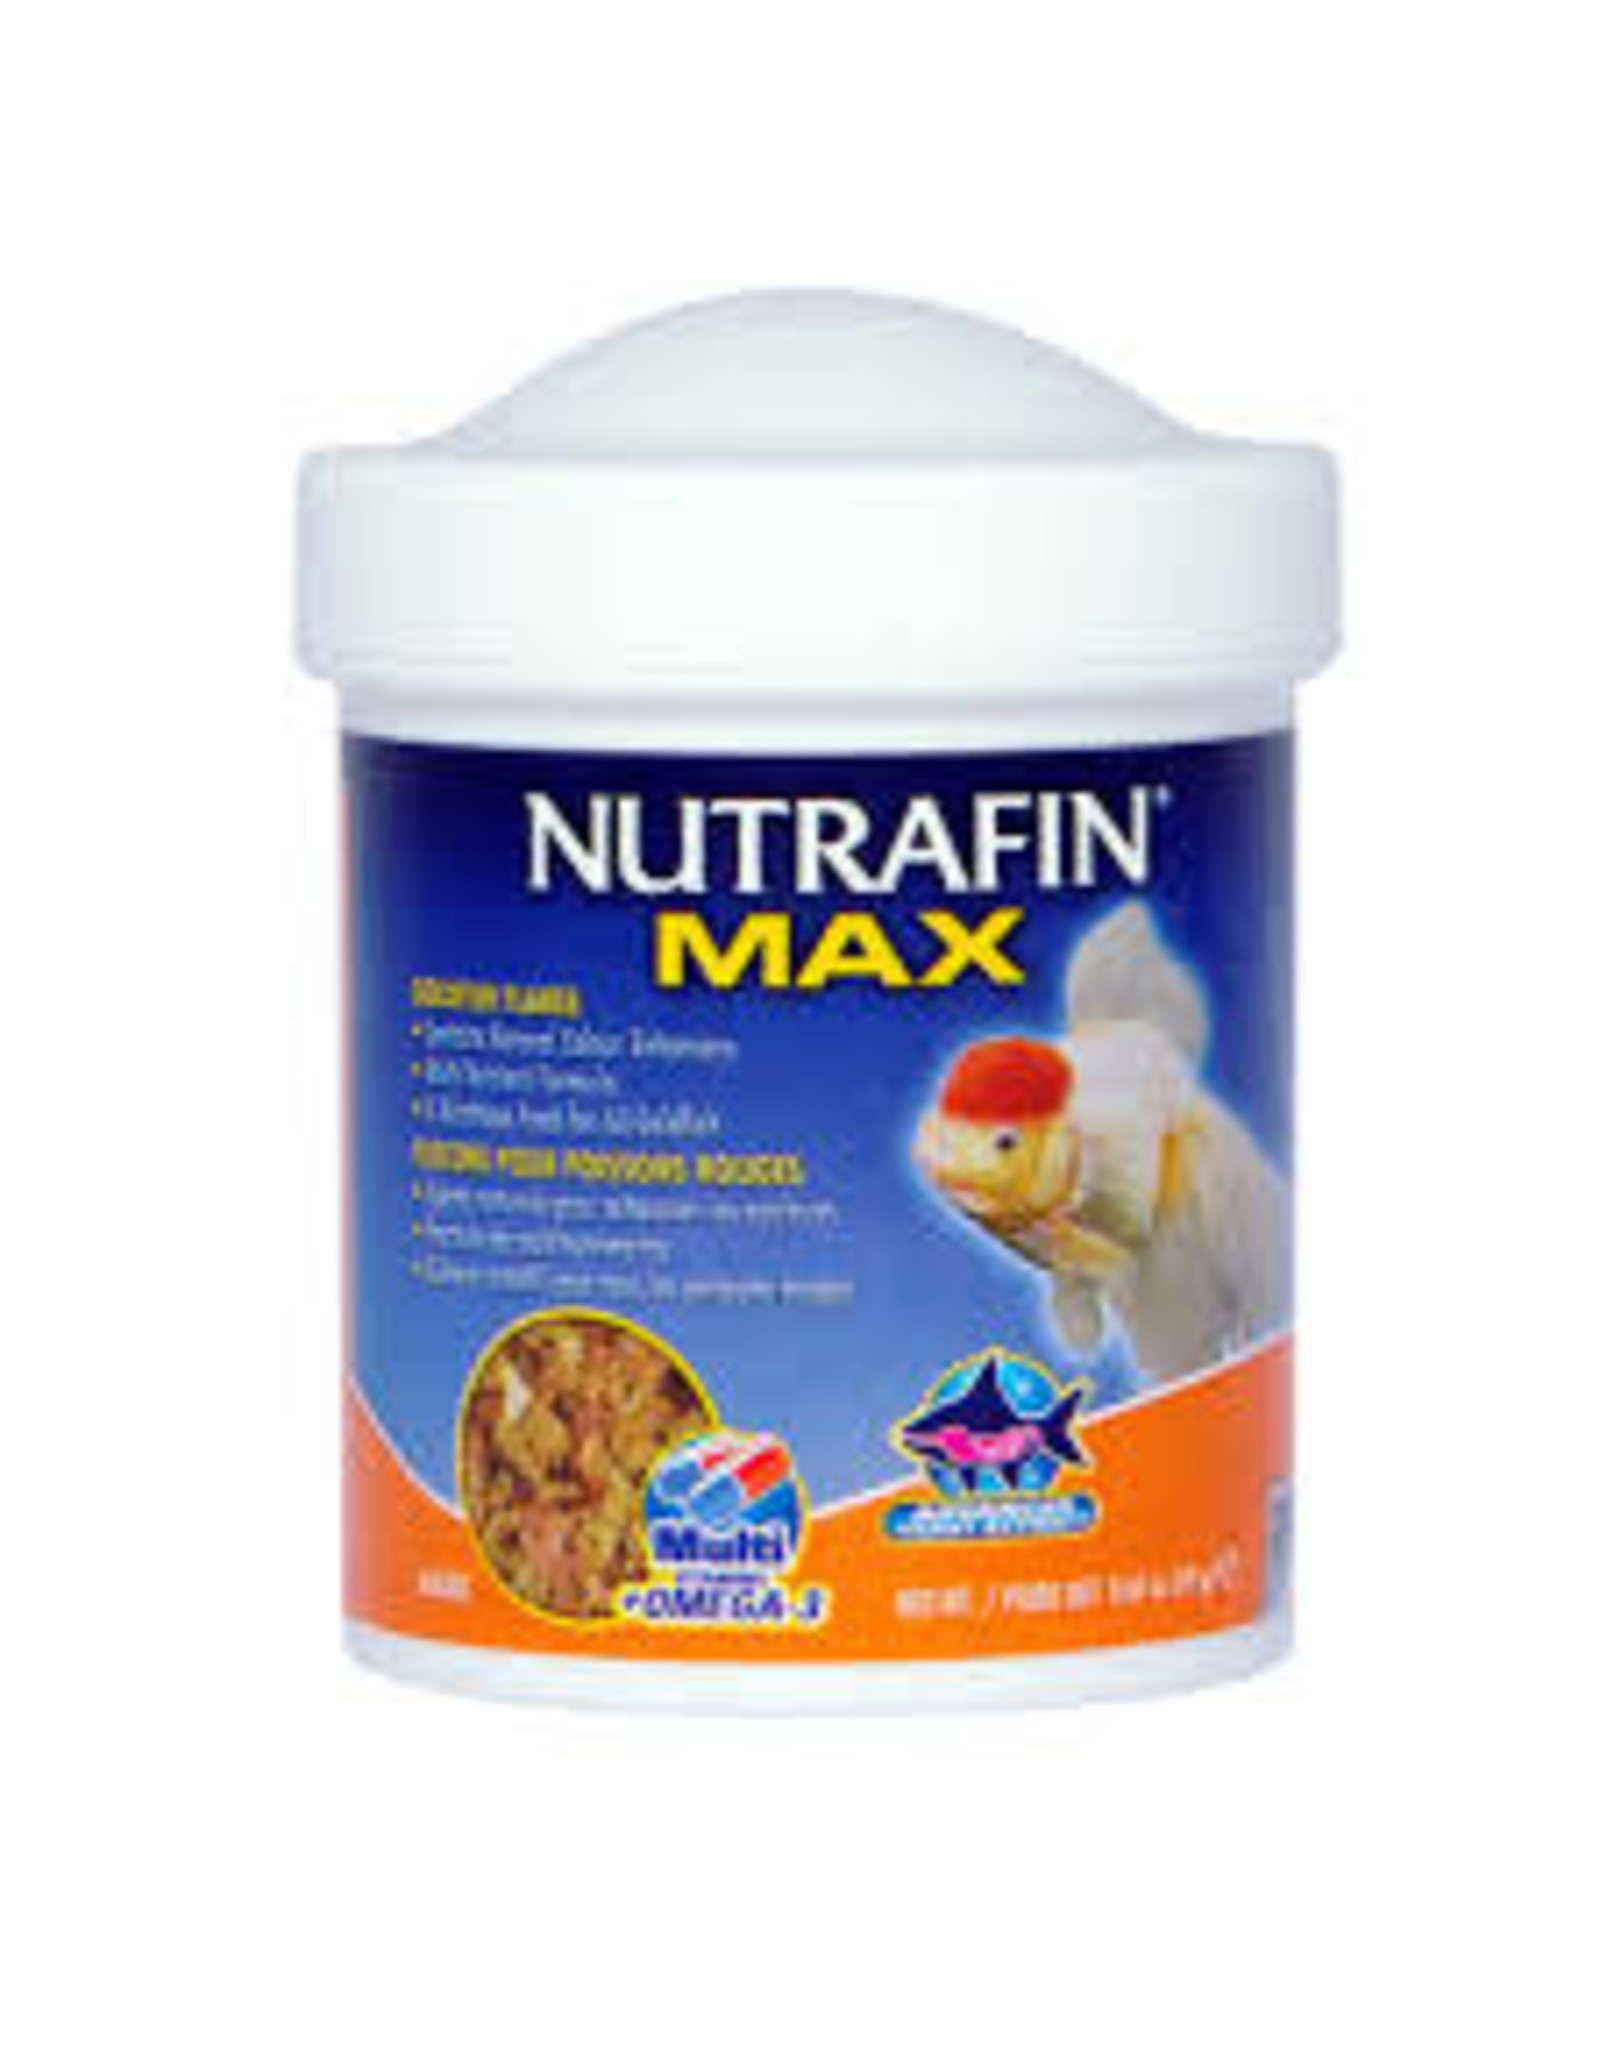 Nutrafin Max Nutrafin Max - Goldfish Flakes 77g